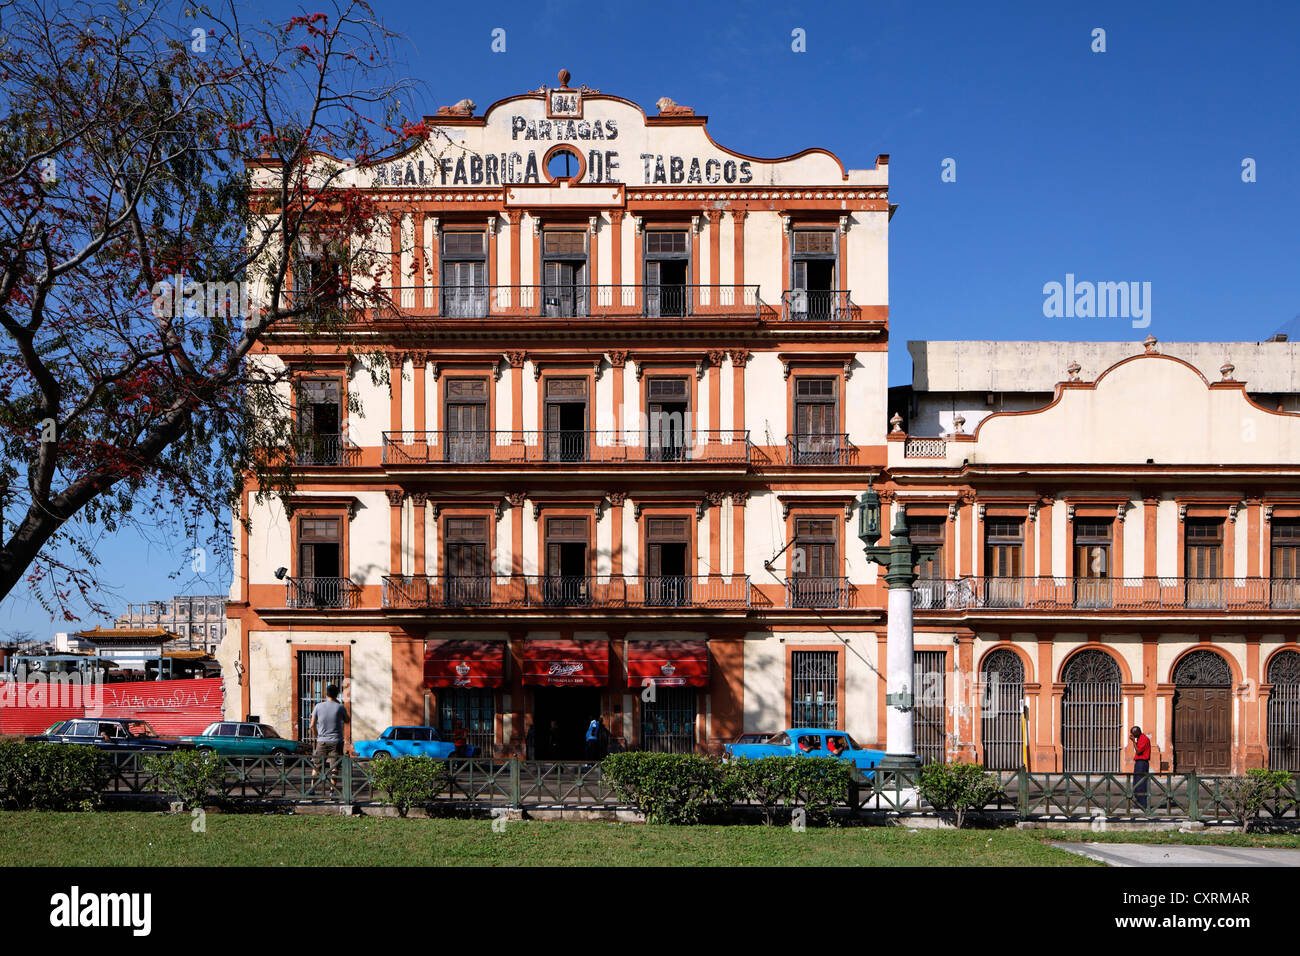 Oldest and most famous cigar factory of Havana, Real Fabrica de Tabacos Partagas, classic cars, Calle Industria - Stock Image